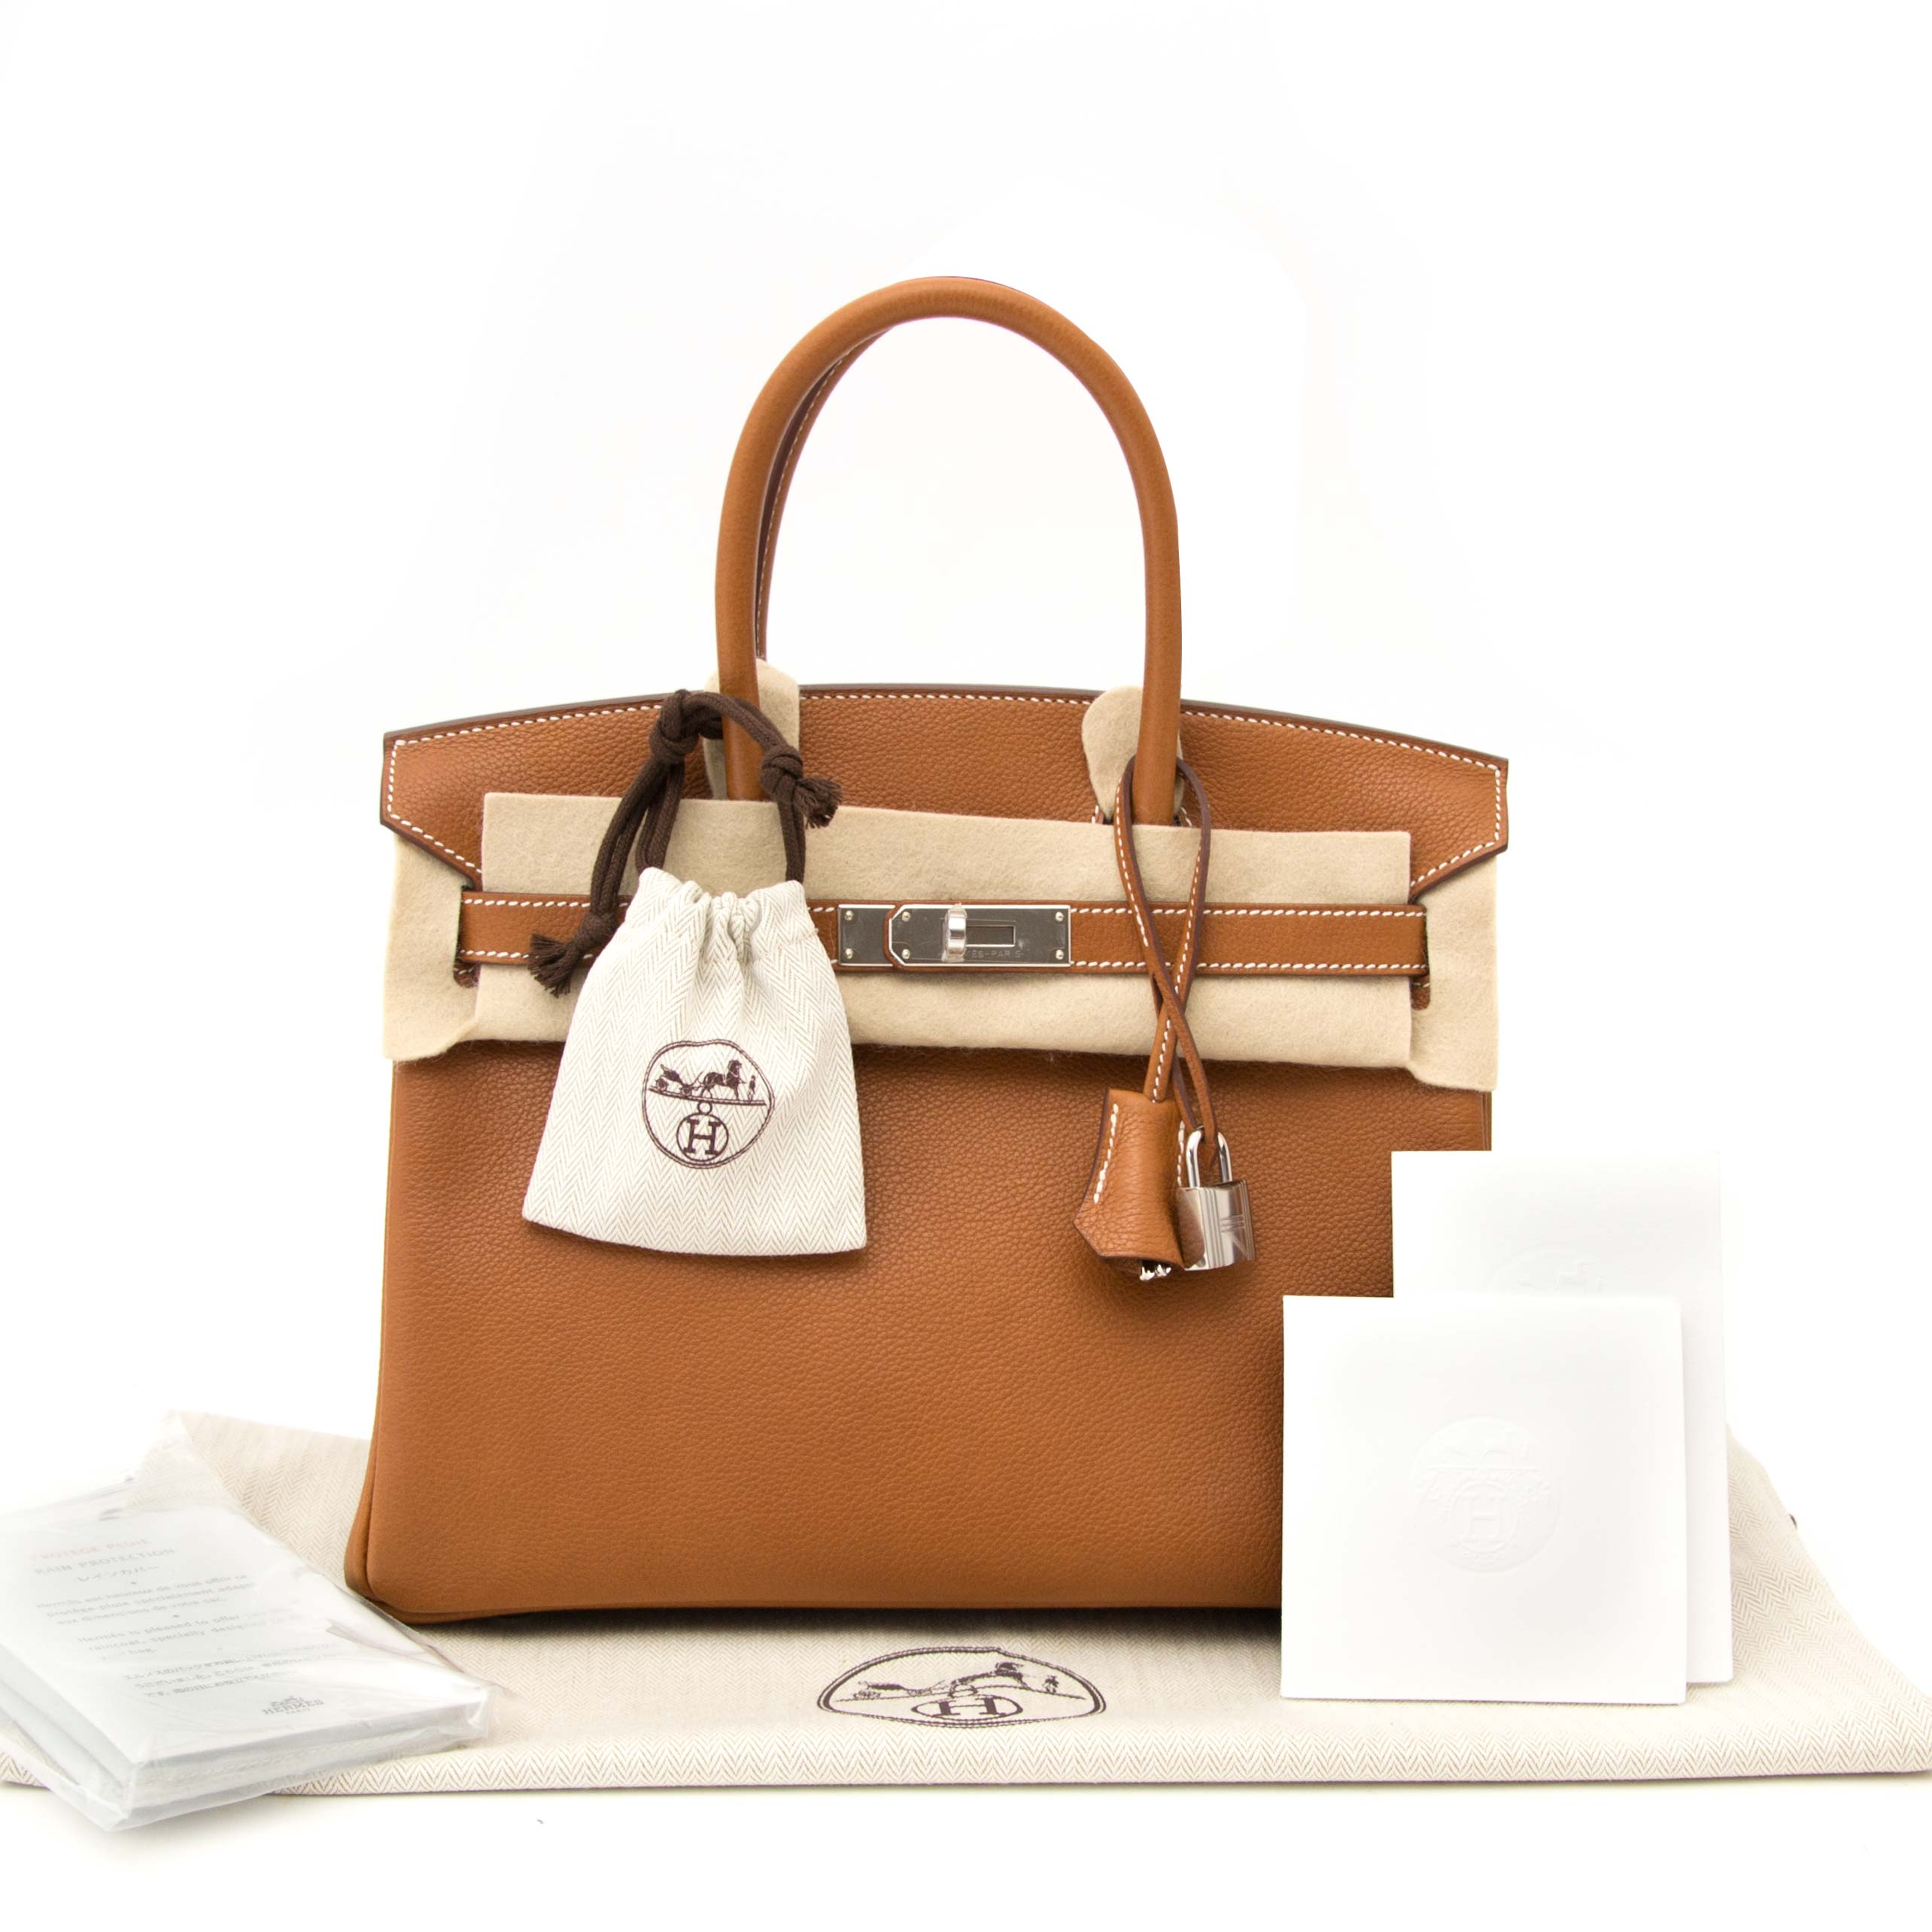 d38d1181a2 ... skip the waitinglist worldwide shipping 100% authentic invoice included Hermes  Birkin Fauve Barenia Faubourg